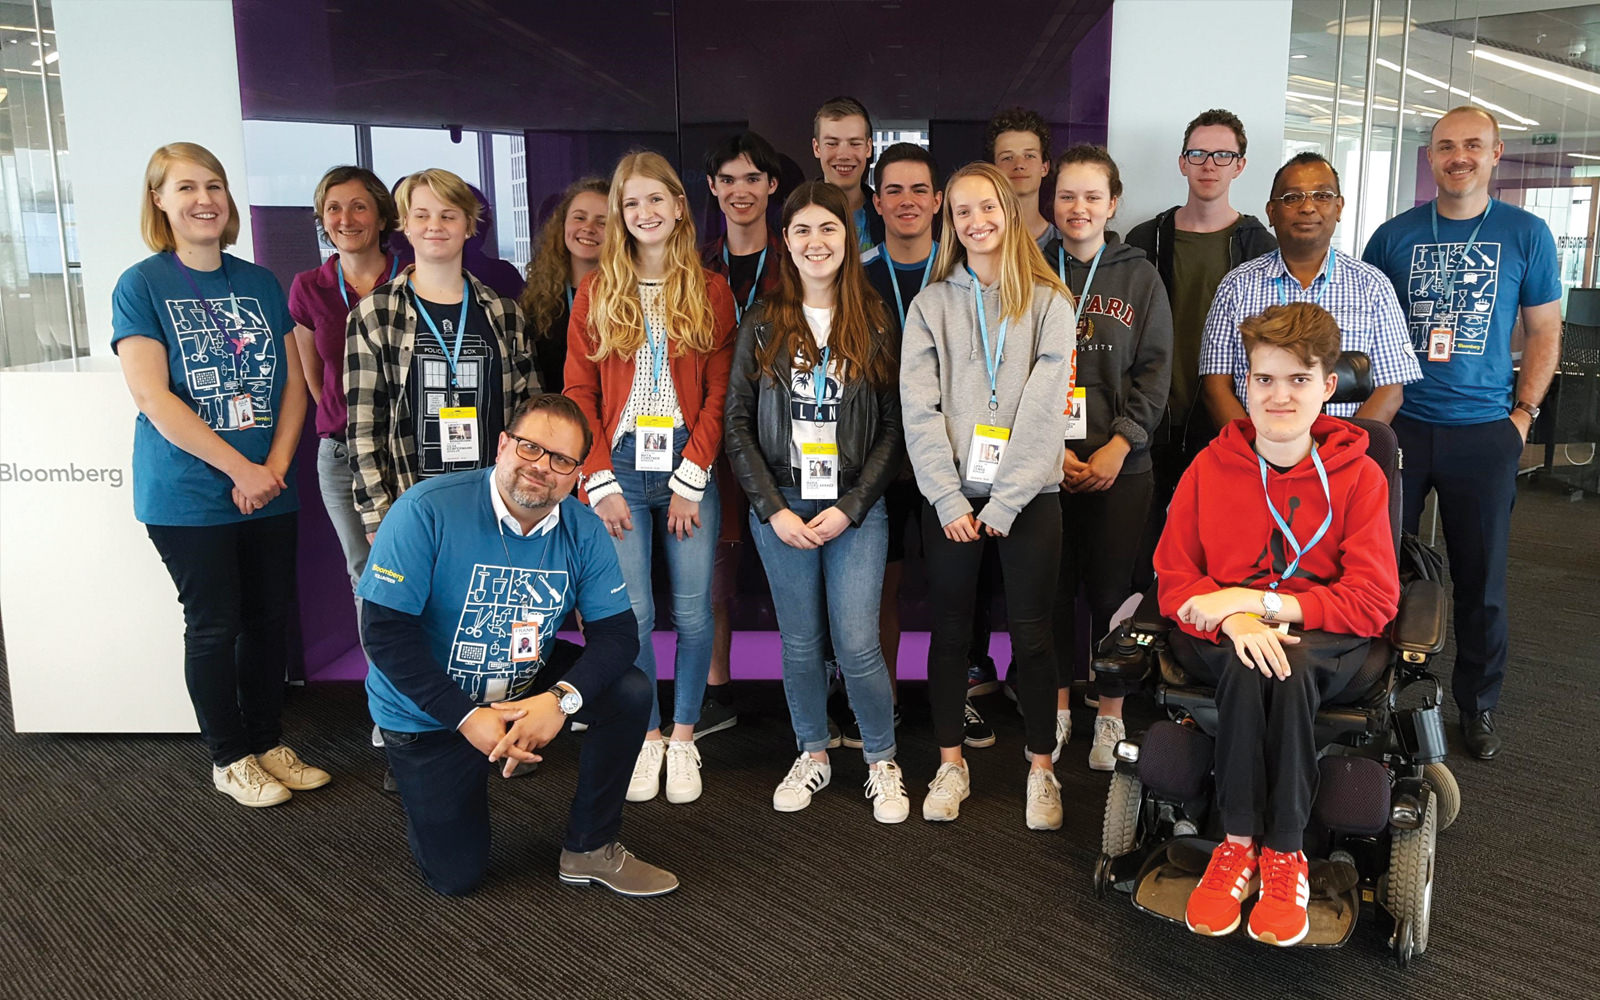 Bloomberg L.P. mentors host students at its offices in Frankfurt, Germany, through the Bloomberg Startup program.